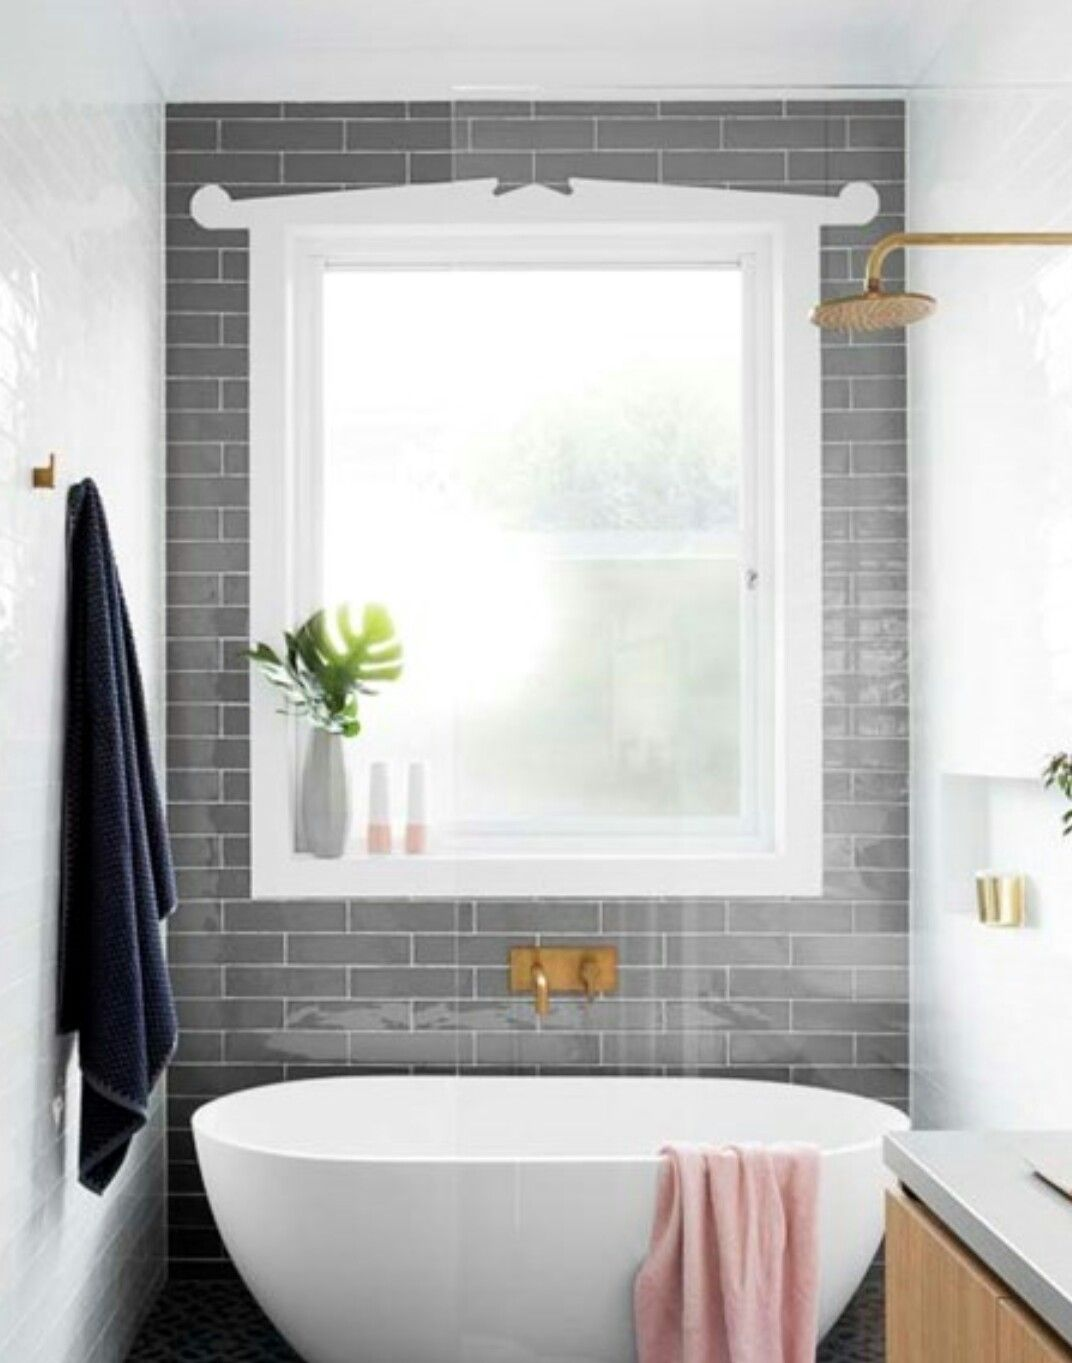 Grey subway feature tiles around bathroom window for Bathroom feature tiles